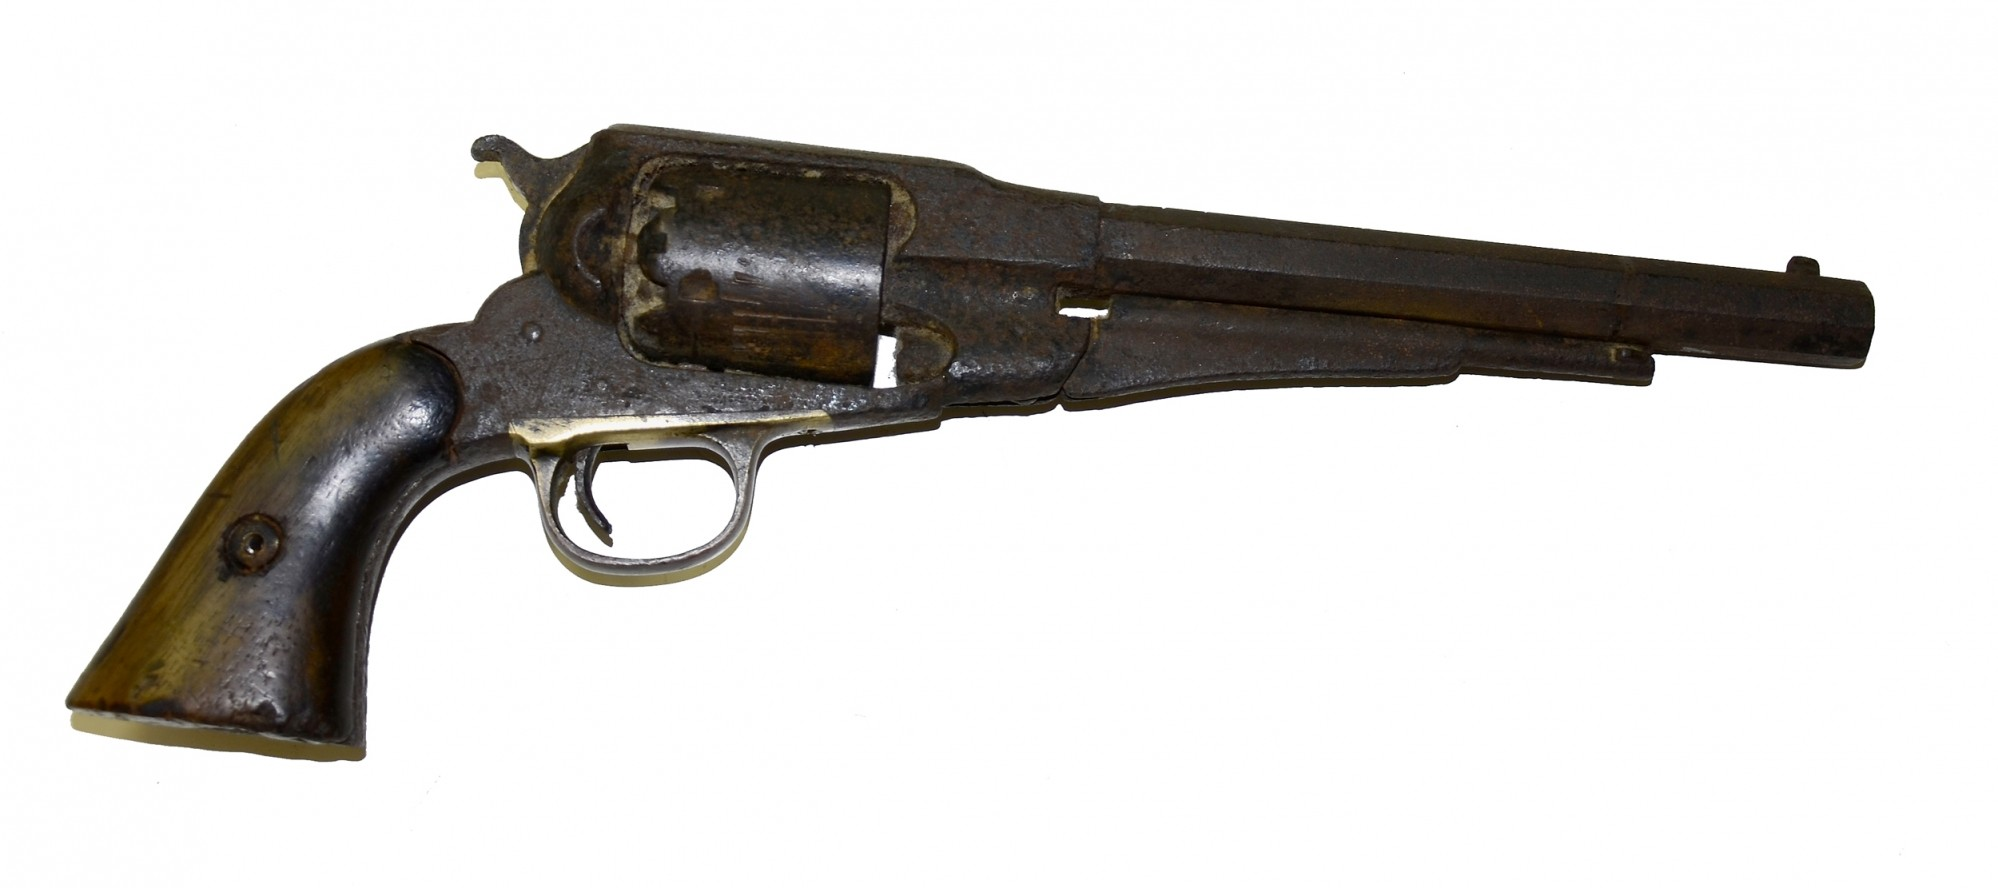 MODEL 1858 ARMY REVOLVER IN RELIC CONDITION FROM UNKNOWN LOCATION